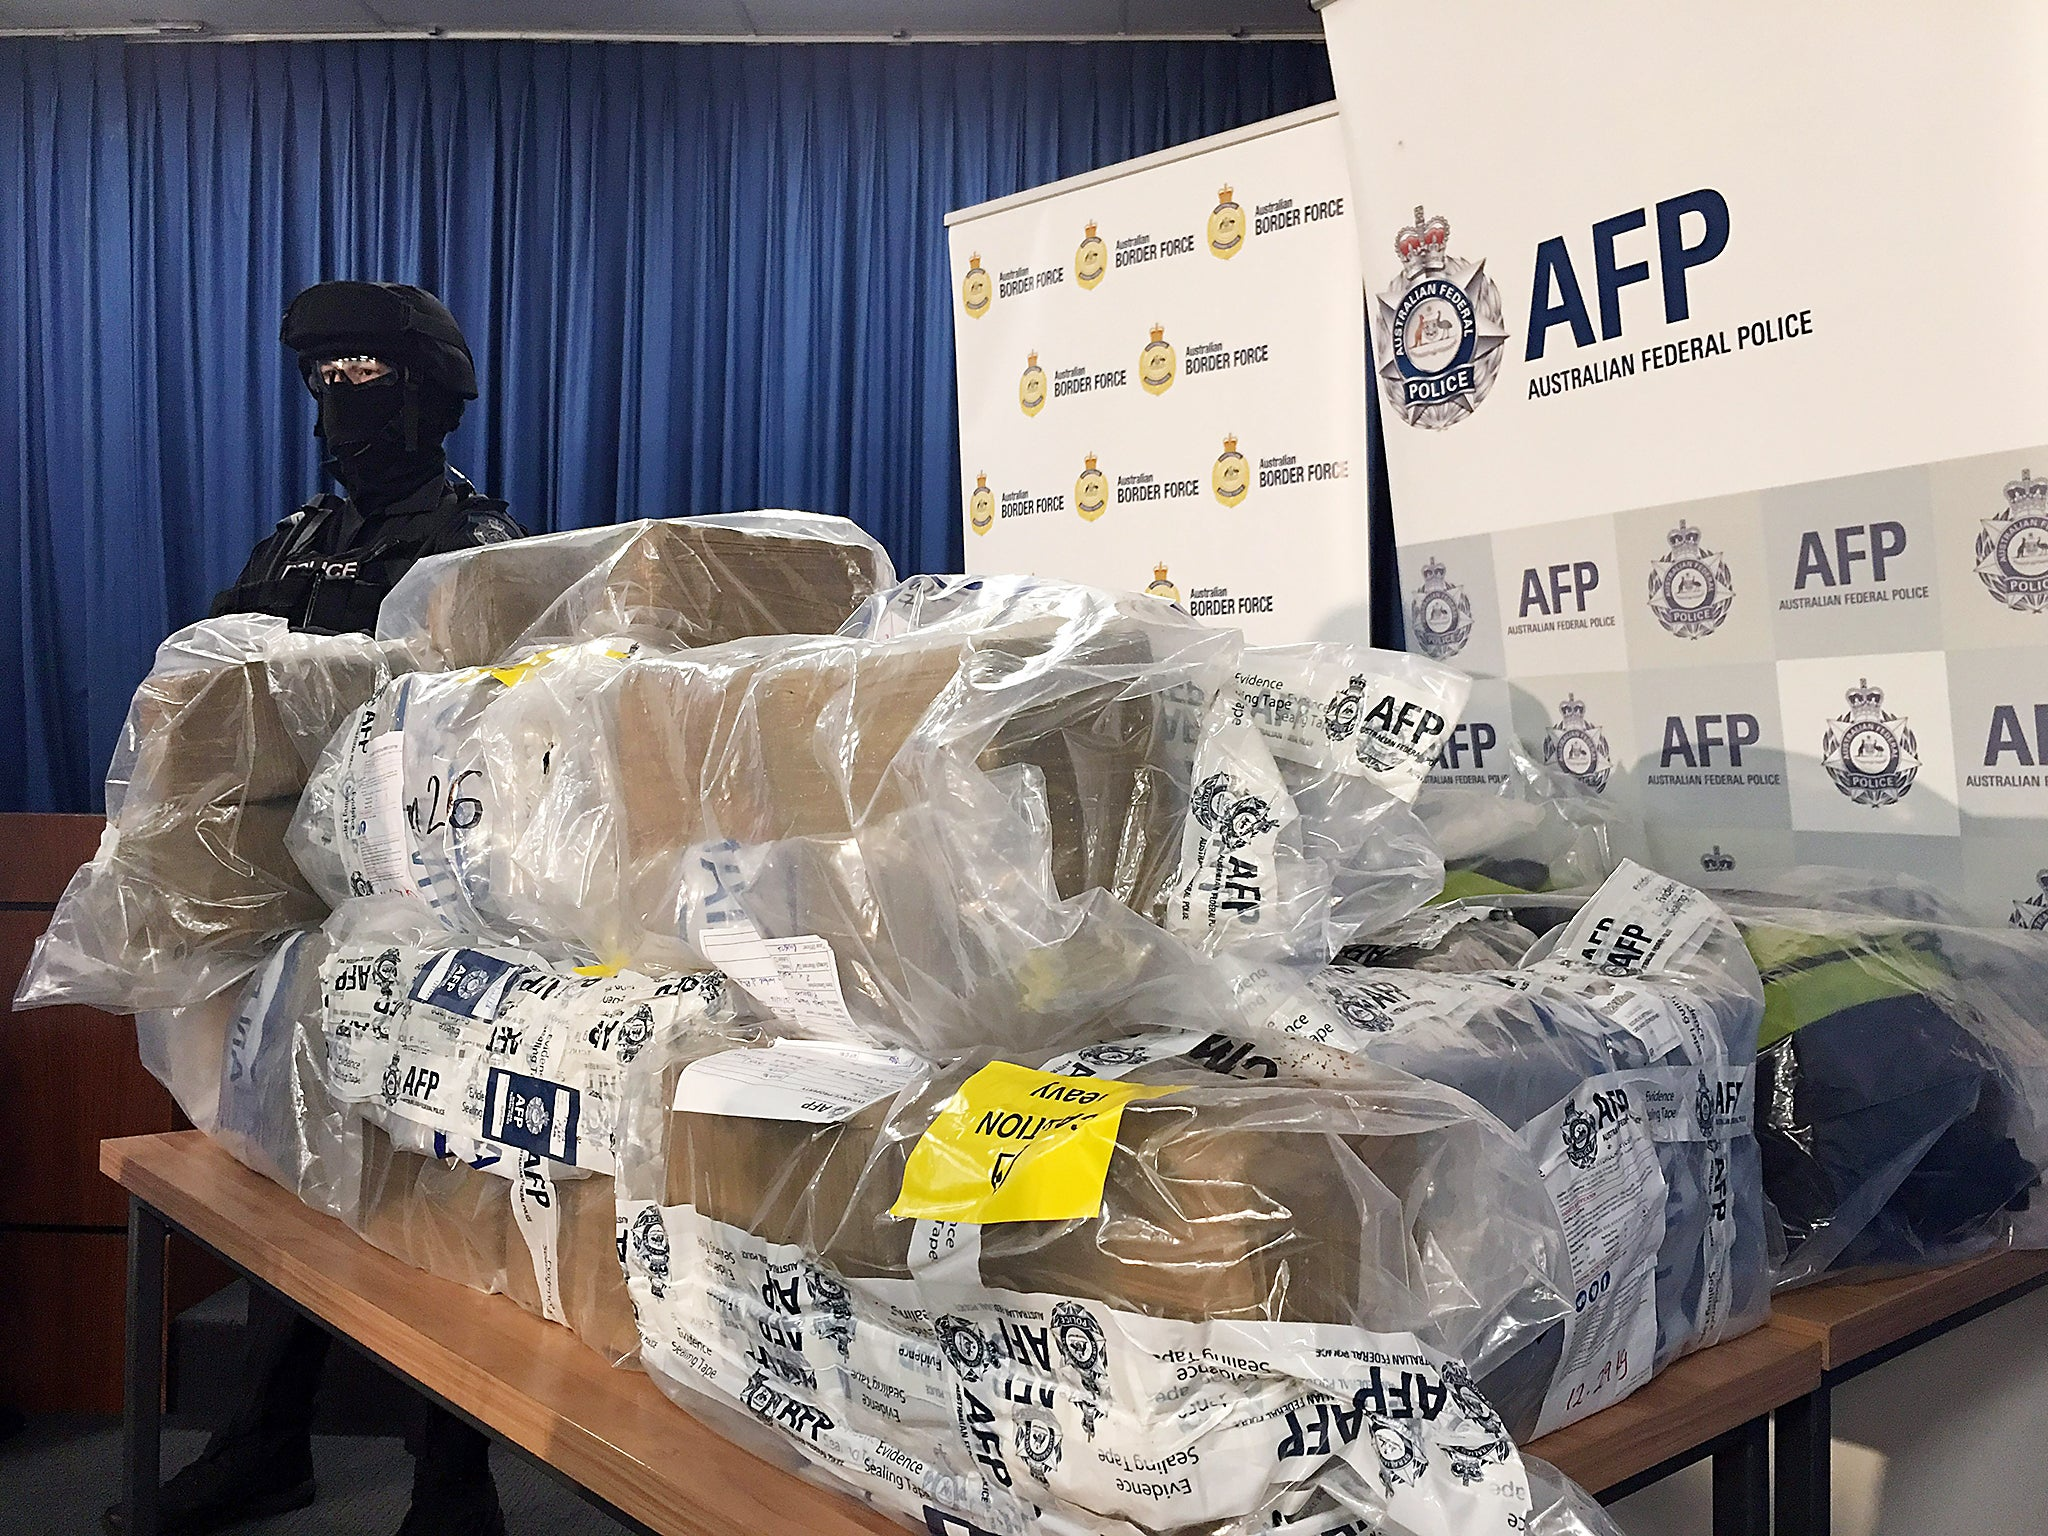 Authorities seize $1bn worth of cocaine in one of the largest US